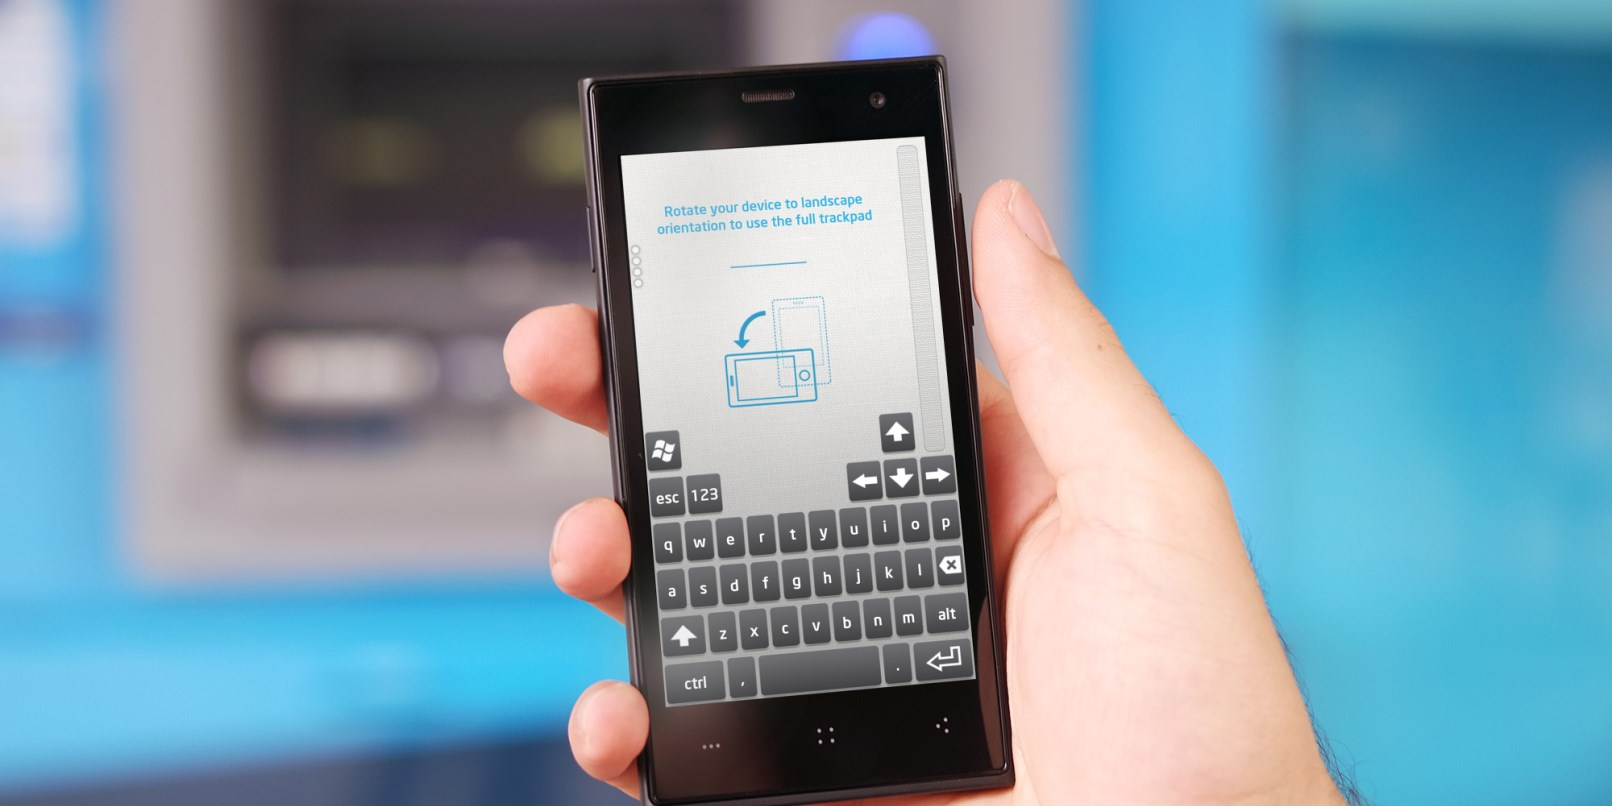 Phone How To Control Your Pc With Your Android Phone intel remote keyboard for android lets you control your pc from afar